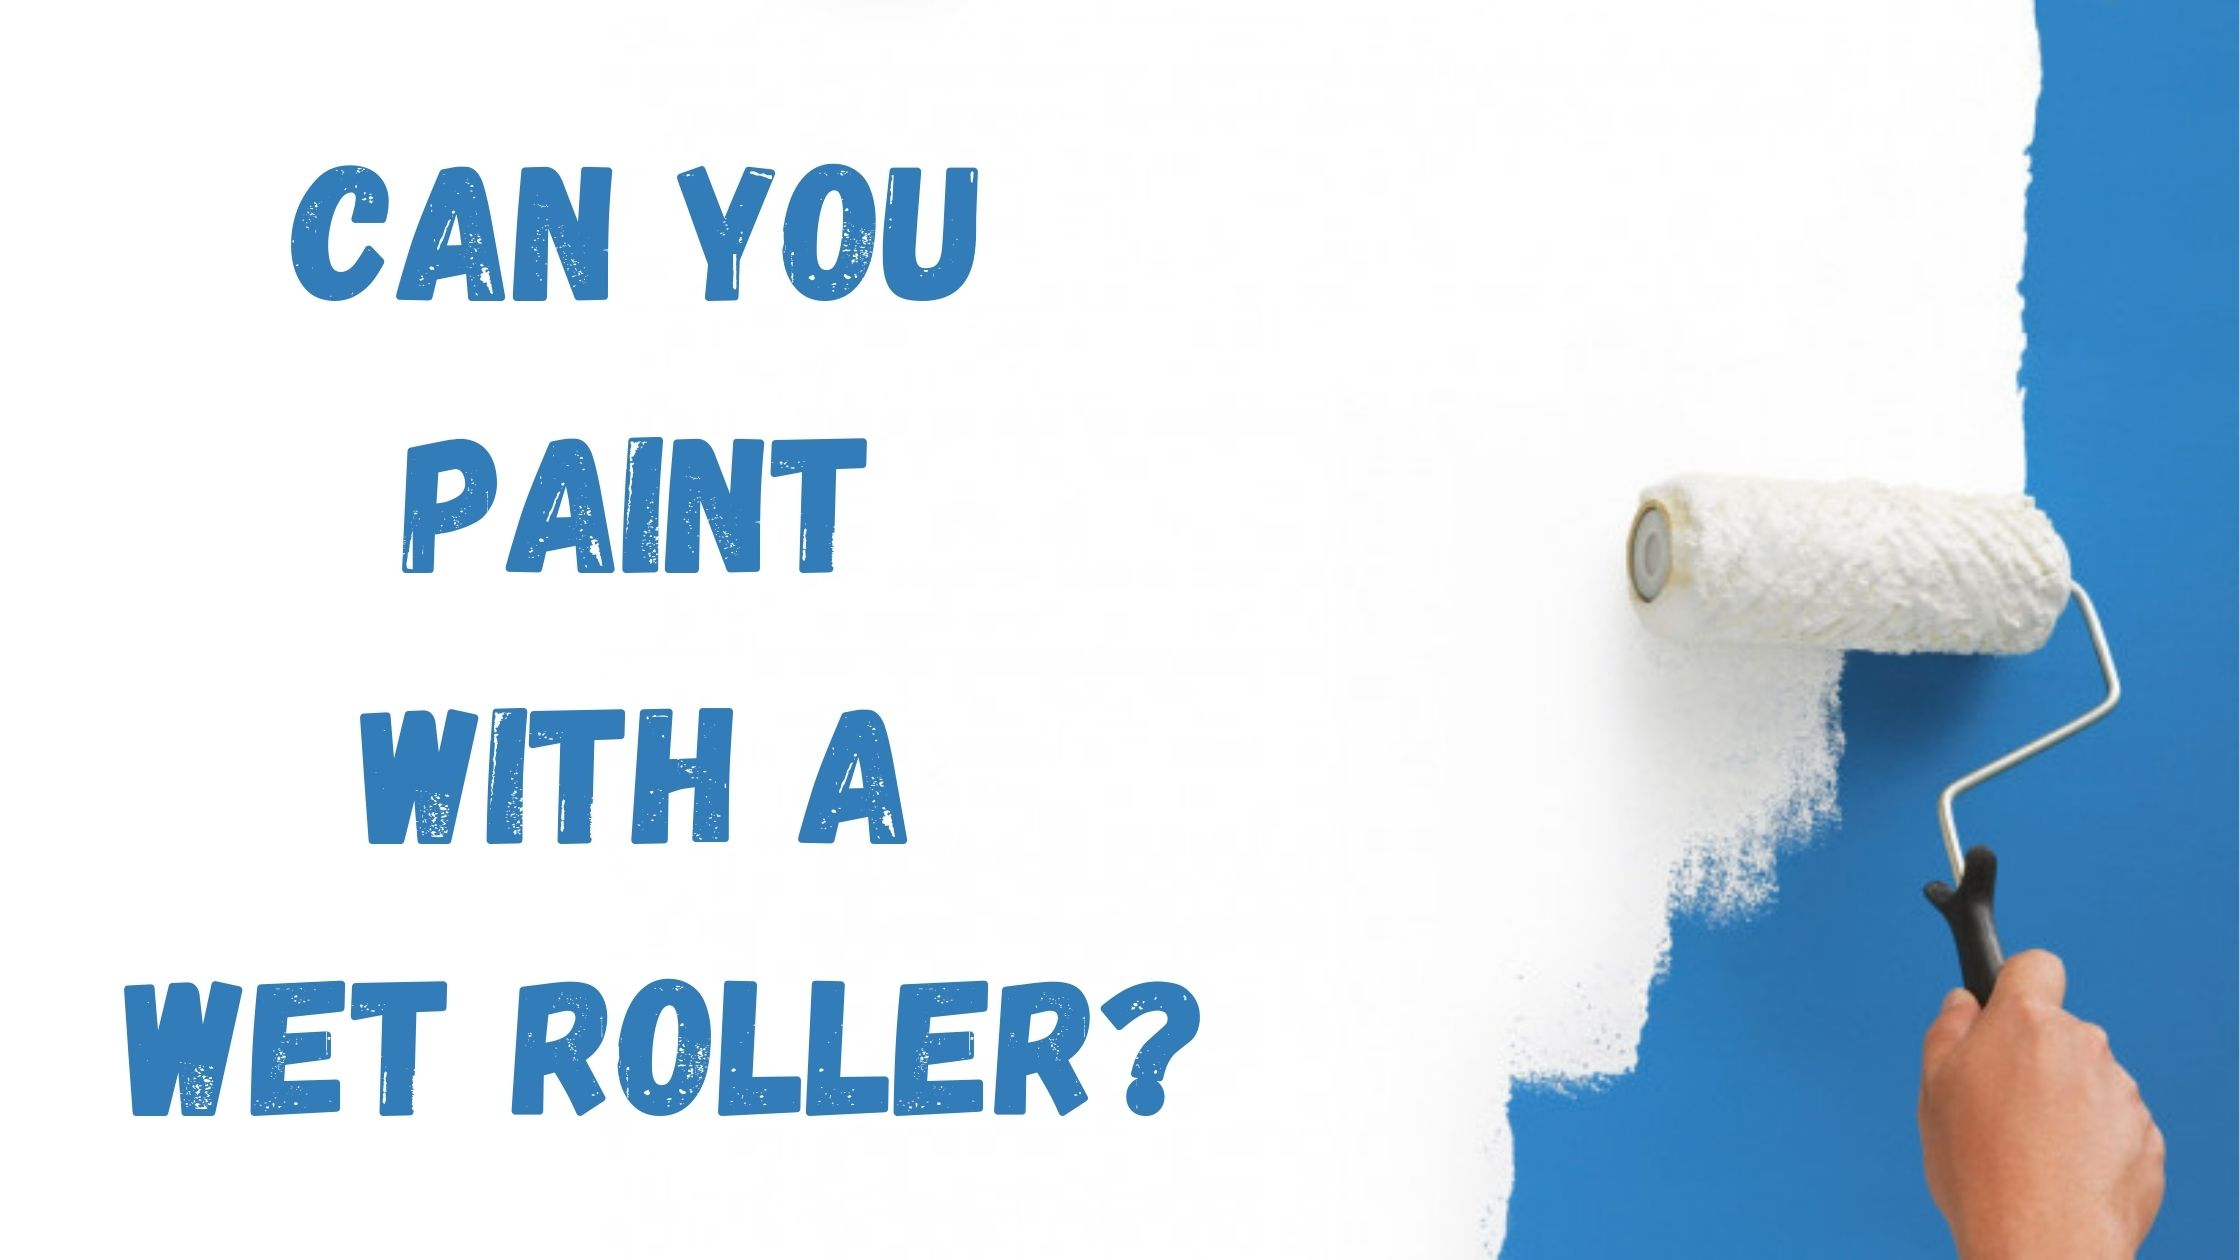 can you paint with a wet roller